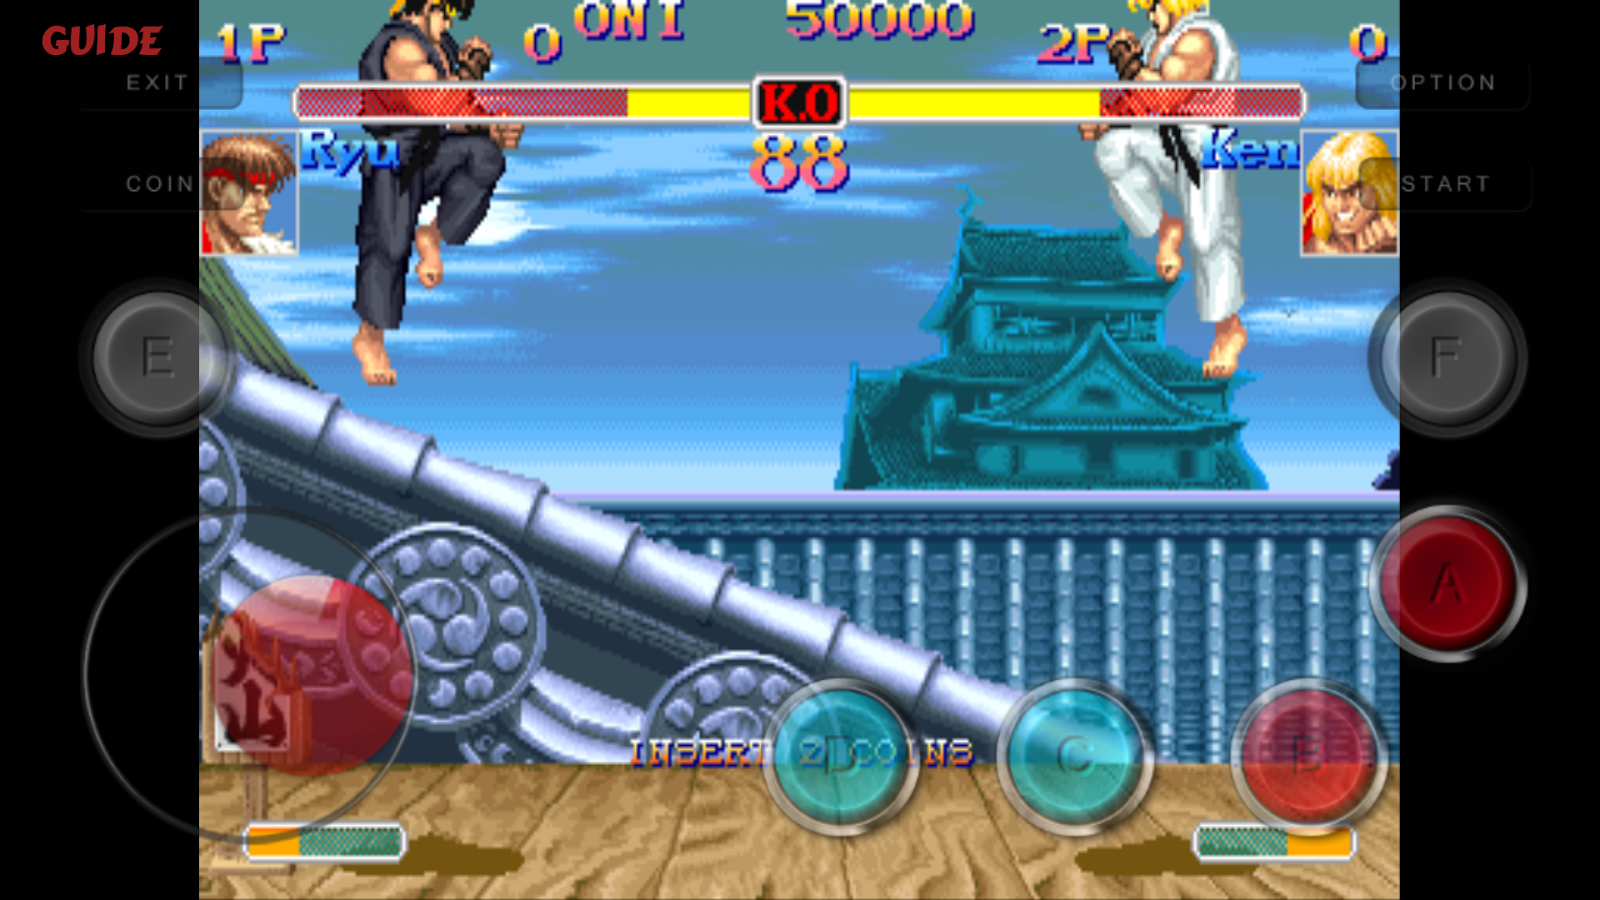 Guide for Street Fighter 1 0 6 sf2 APK Download - Android Books